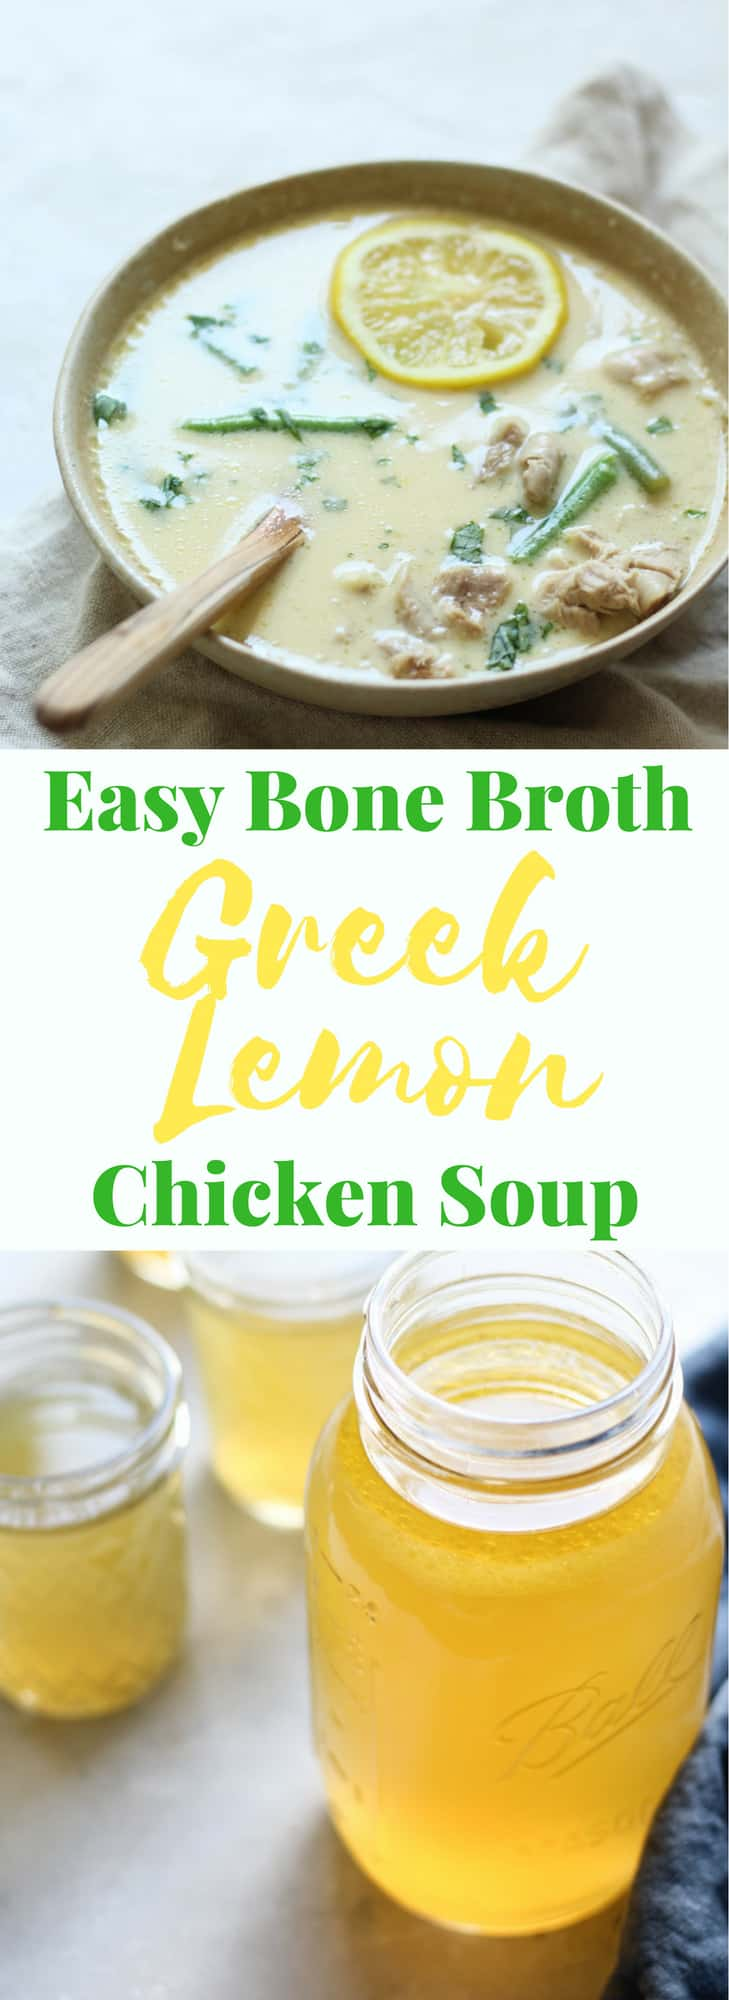 Easy Greek Lemon Chicken Soup Recipe with Bone Broth